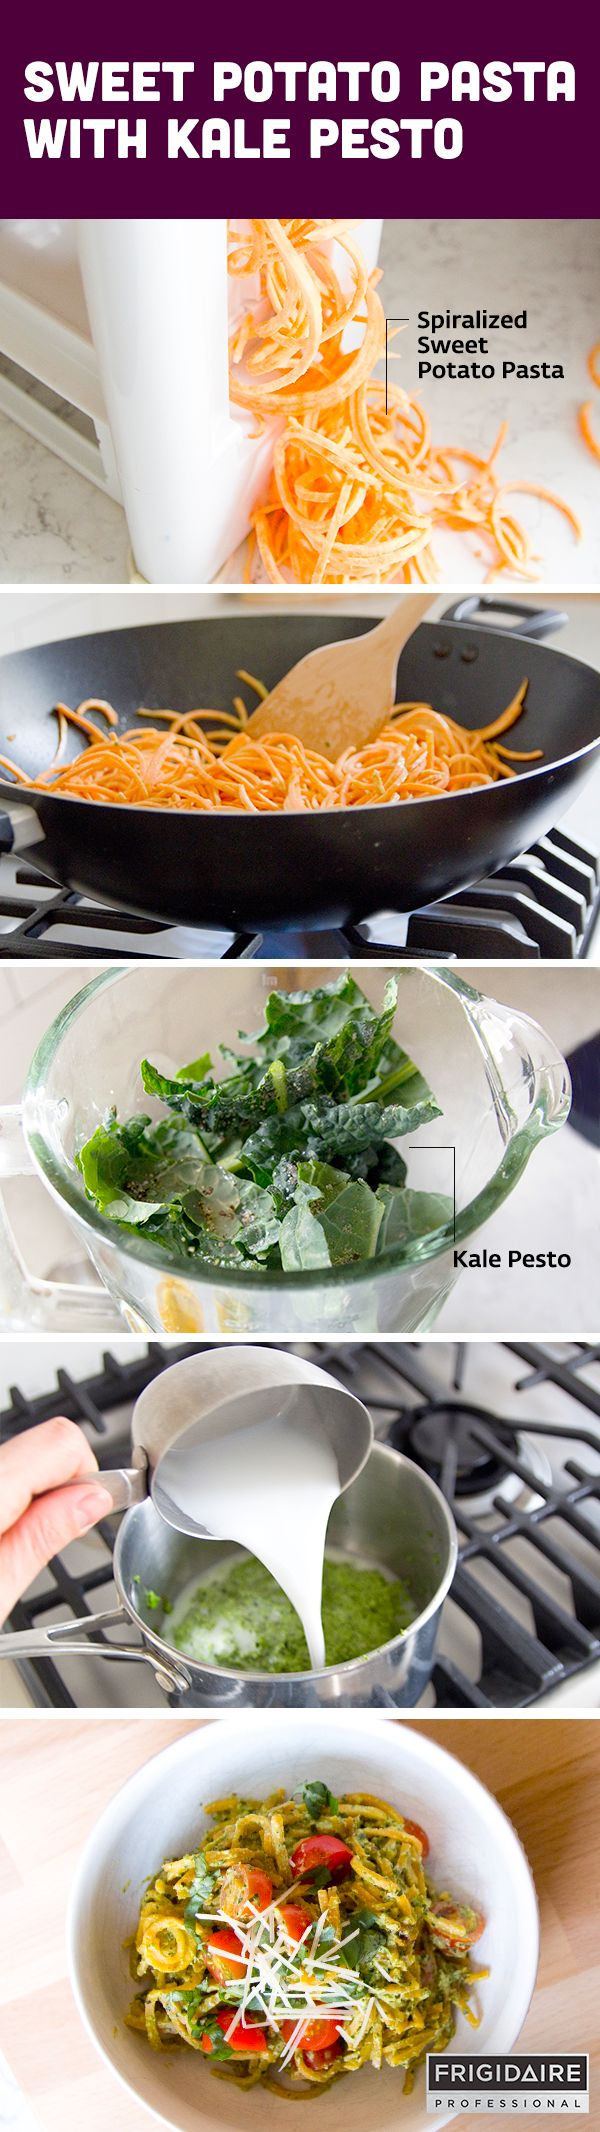 This delicious weeknight dinner recipe from @jenloveskev is so rich and creamy. Spiralized sweet potato (noodles) and blended hemp seed and kale (pesto sauce) are the key ingredients to make this healthy pasta dish. Click for full recipe.